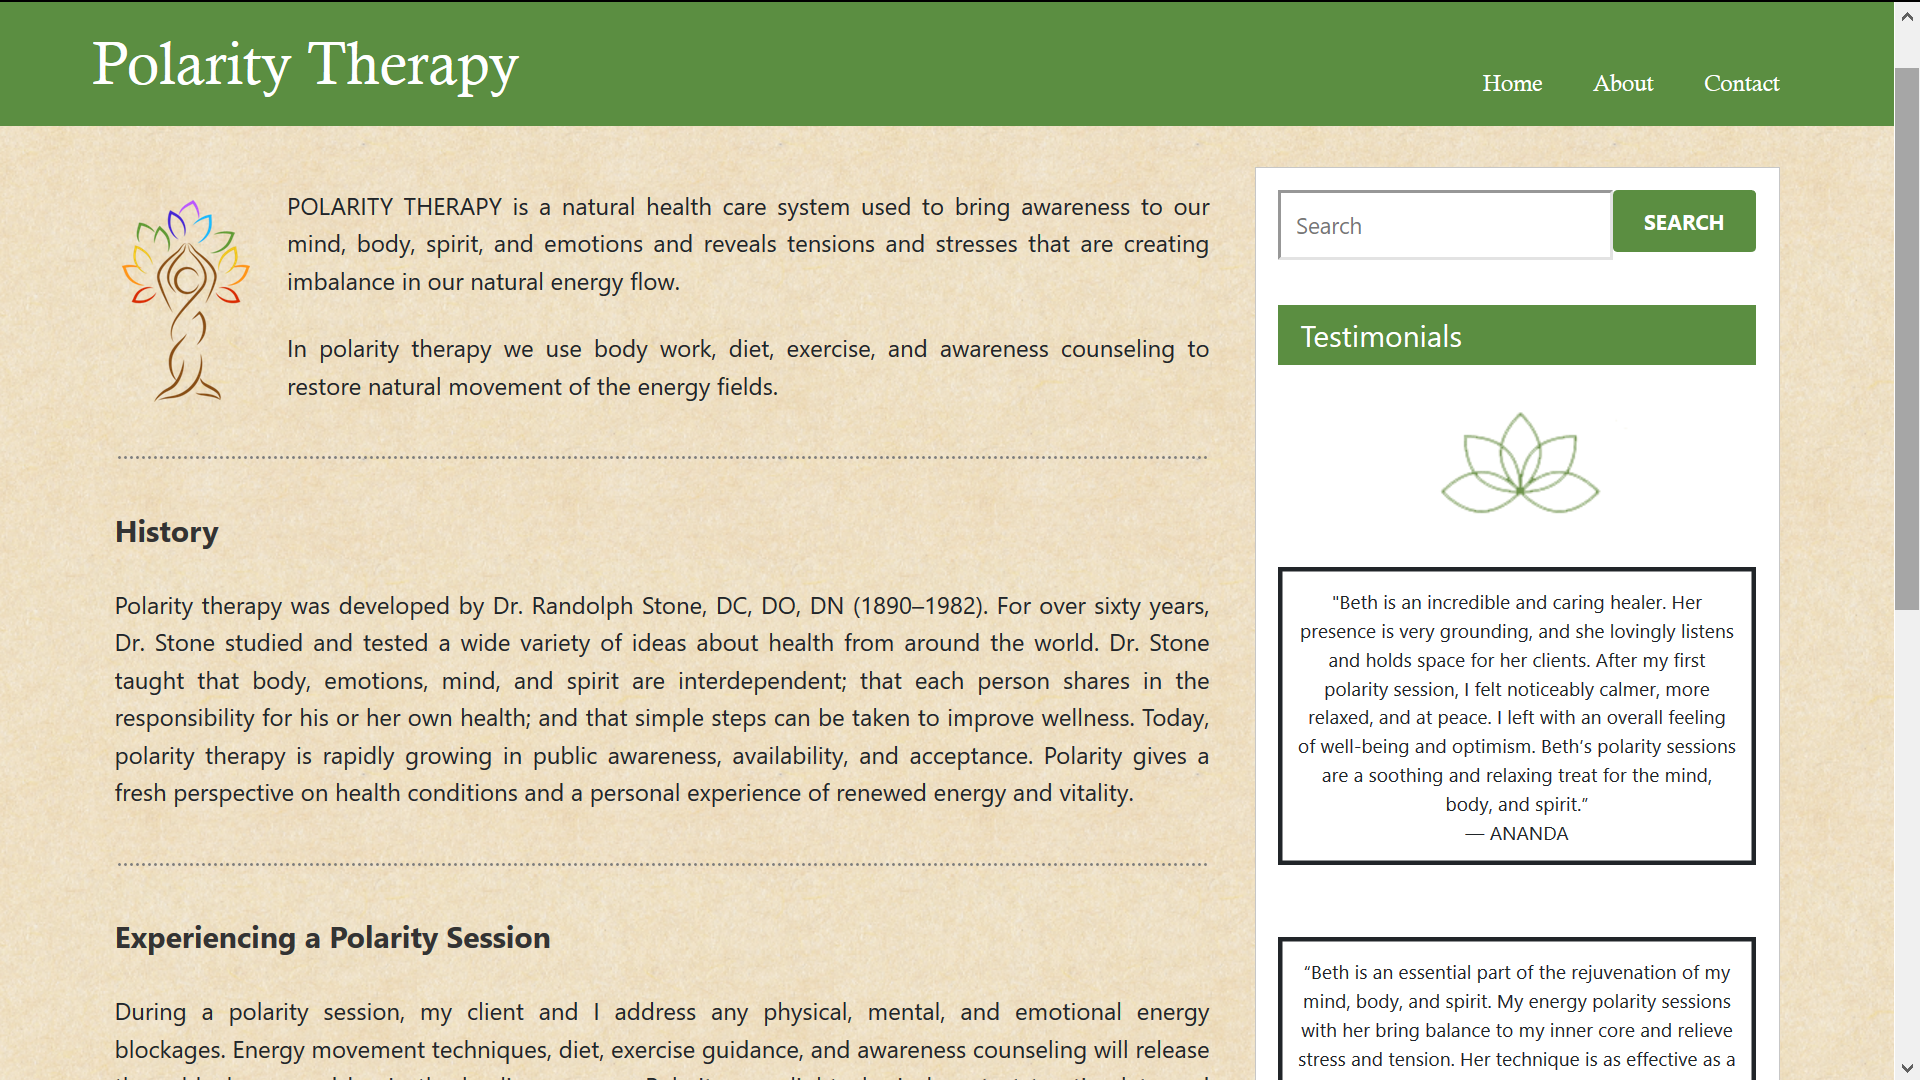 Polarity Therapy CT – Web Design by Dave